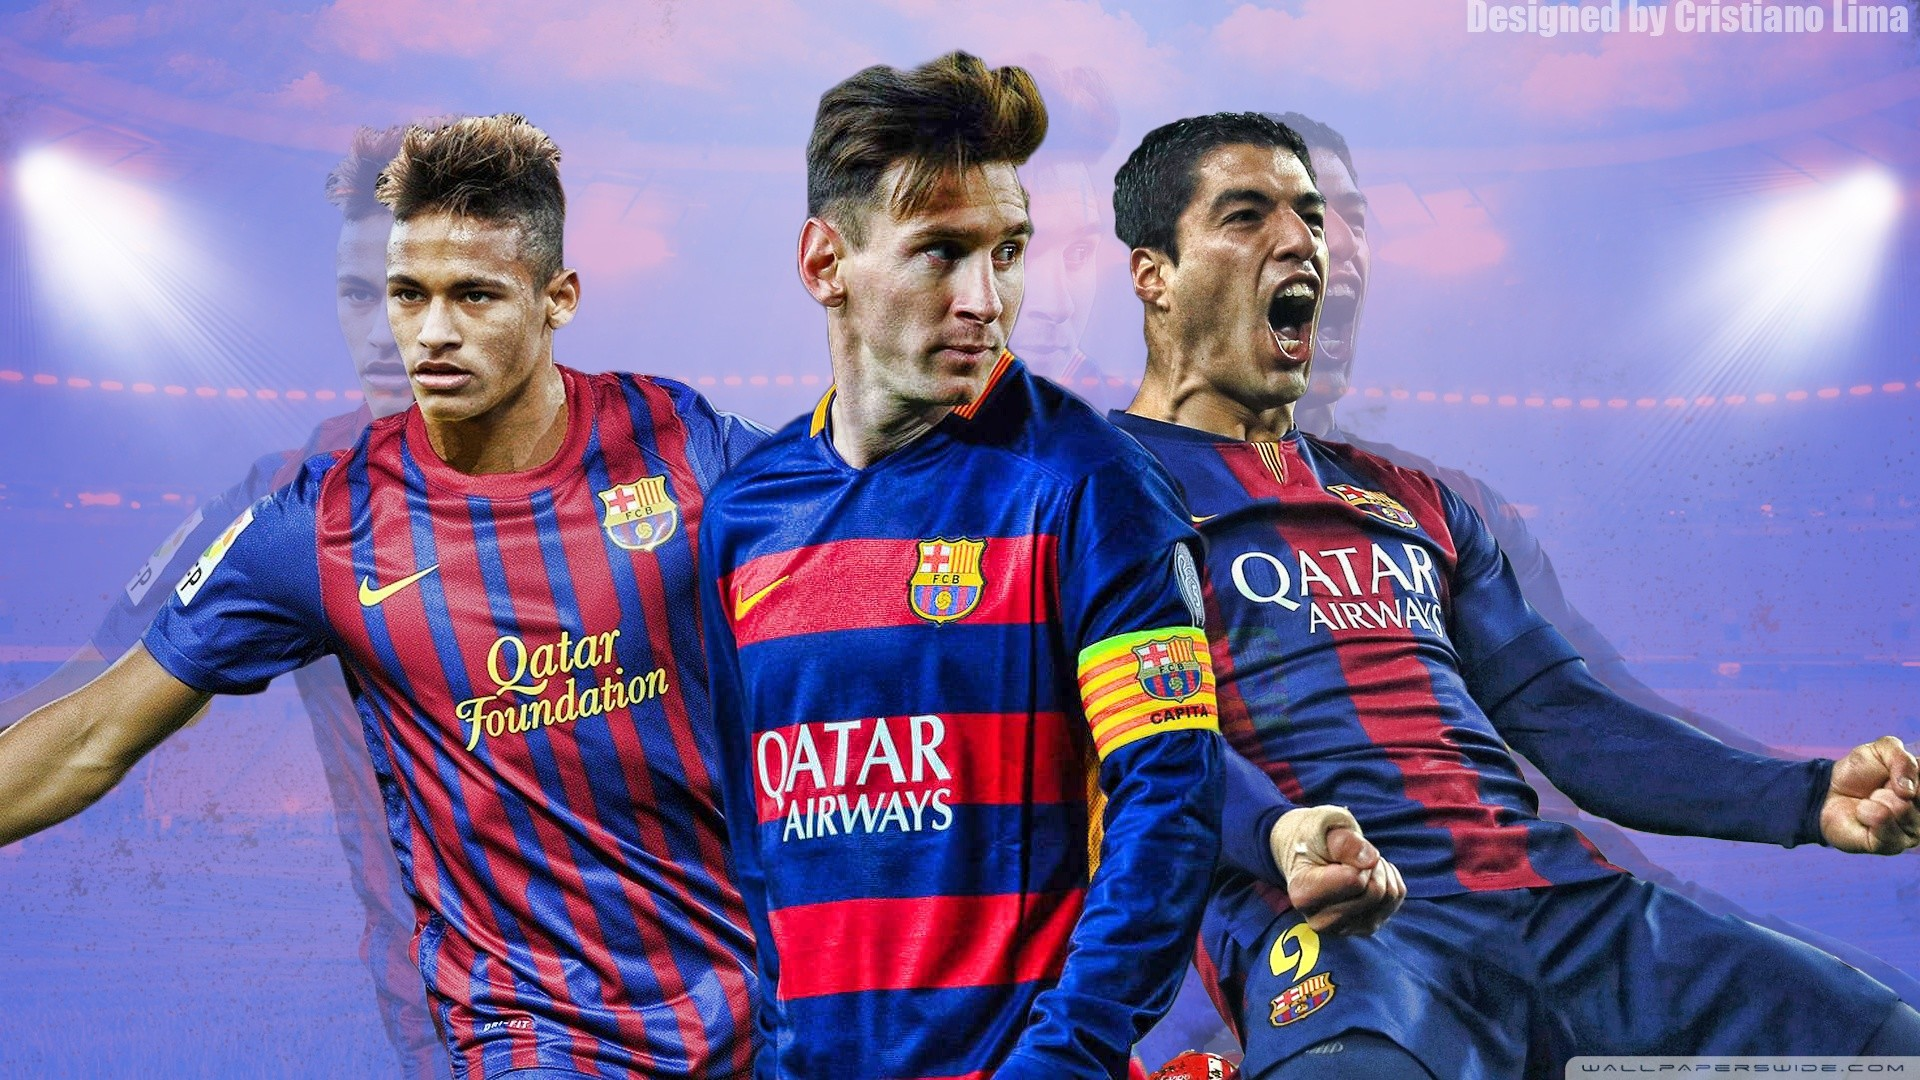 Messi And Neymar Wallpapers Wallpapertag